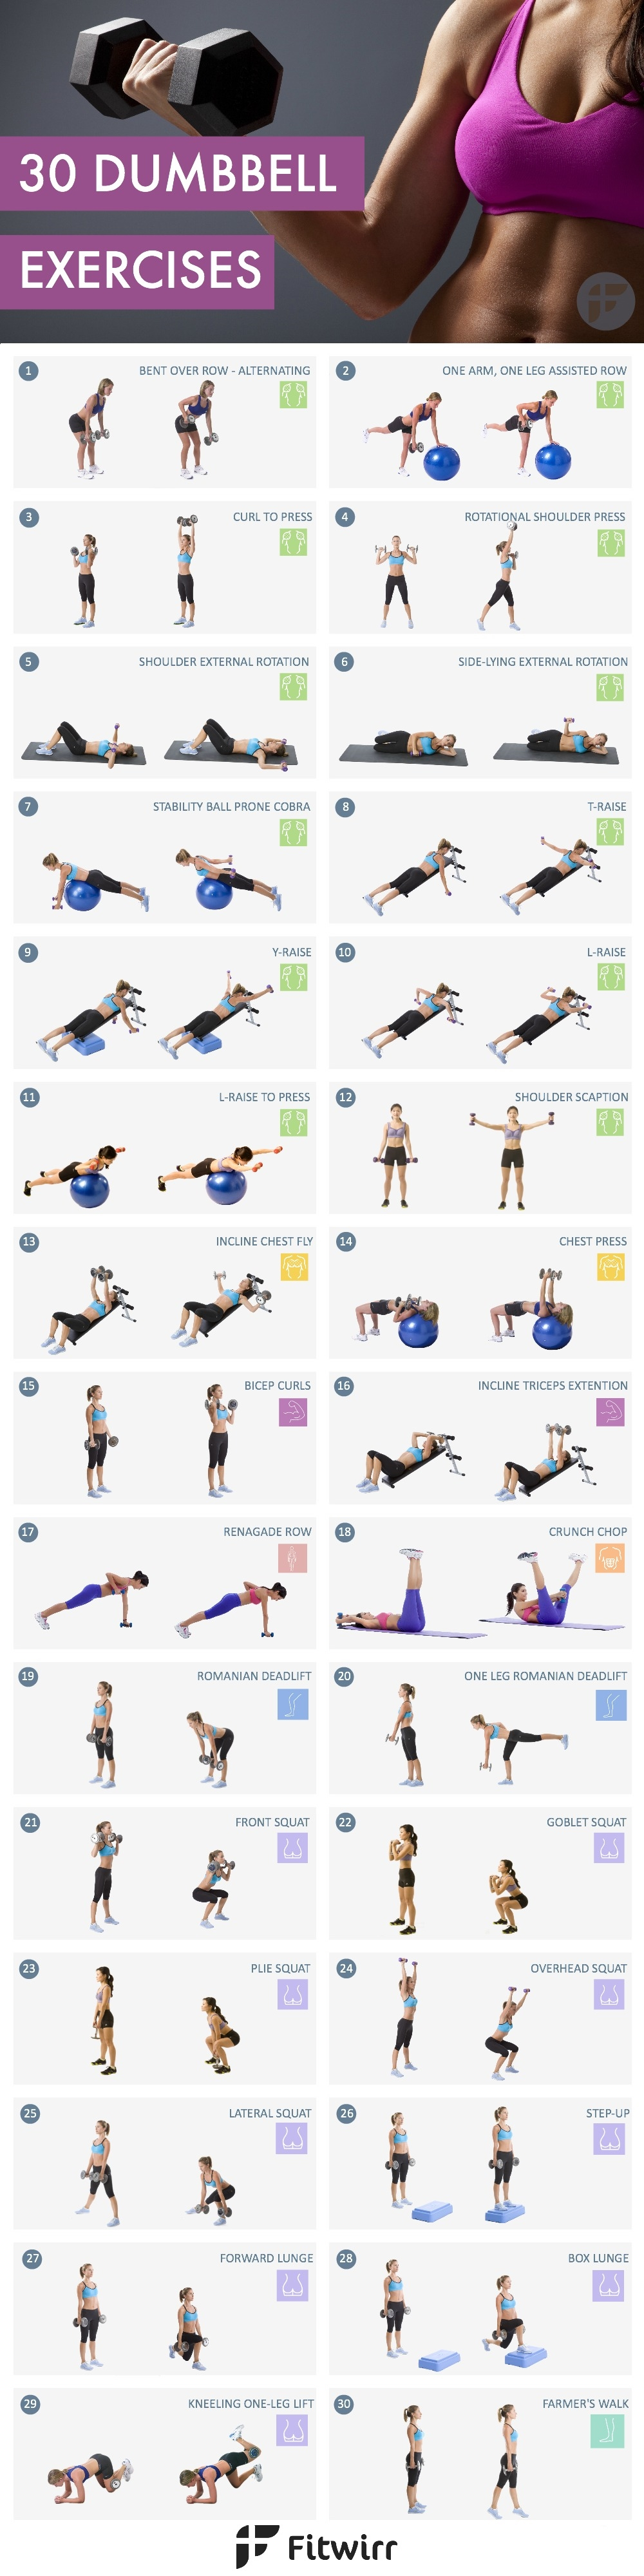 30 dumbbell exercises to spice up your workout routine ...